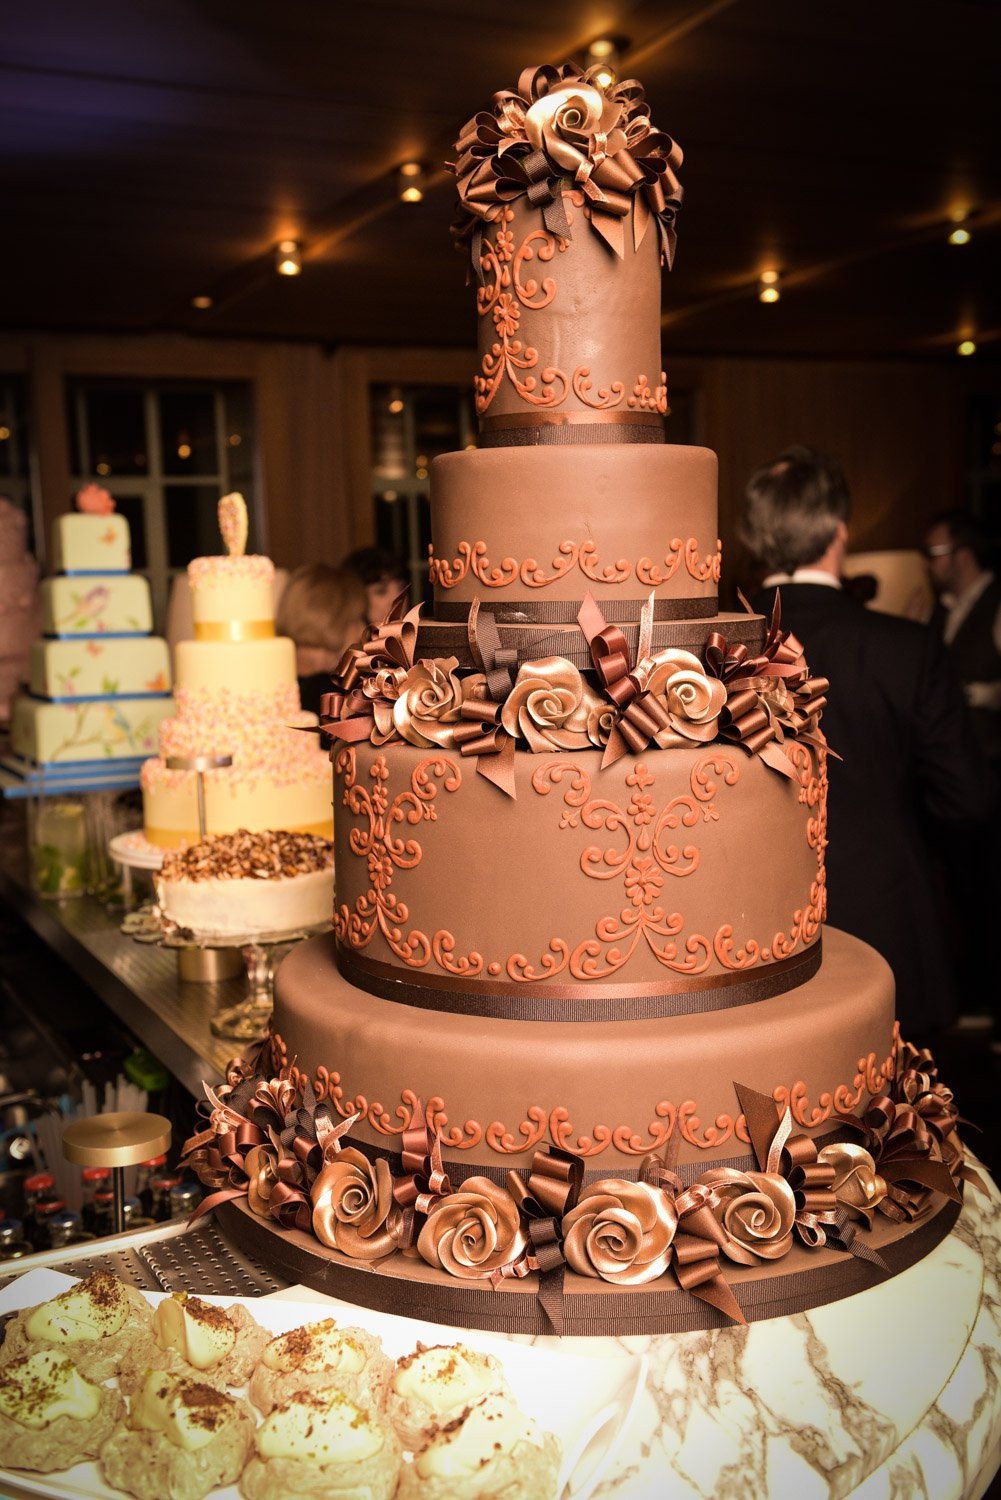 Extravigant Wedding Cakes  9 Most Extravagant And Expensive Celebrity Wedding Cakes